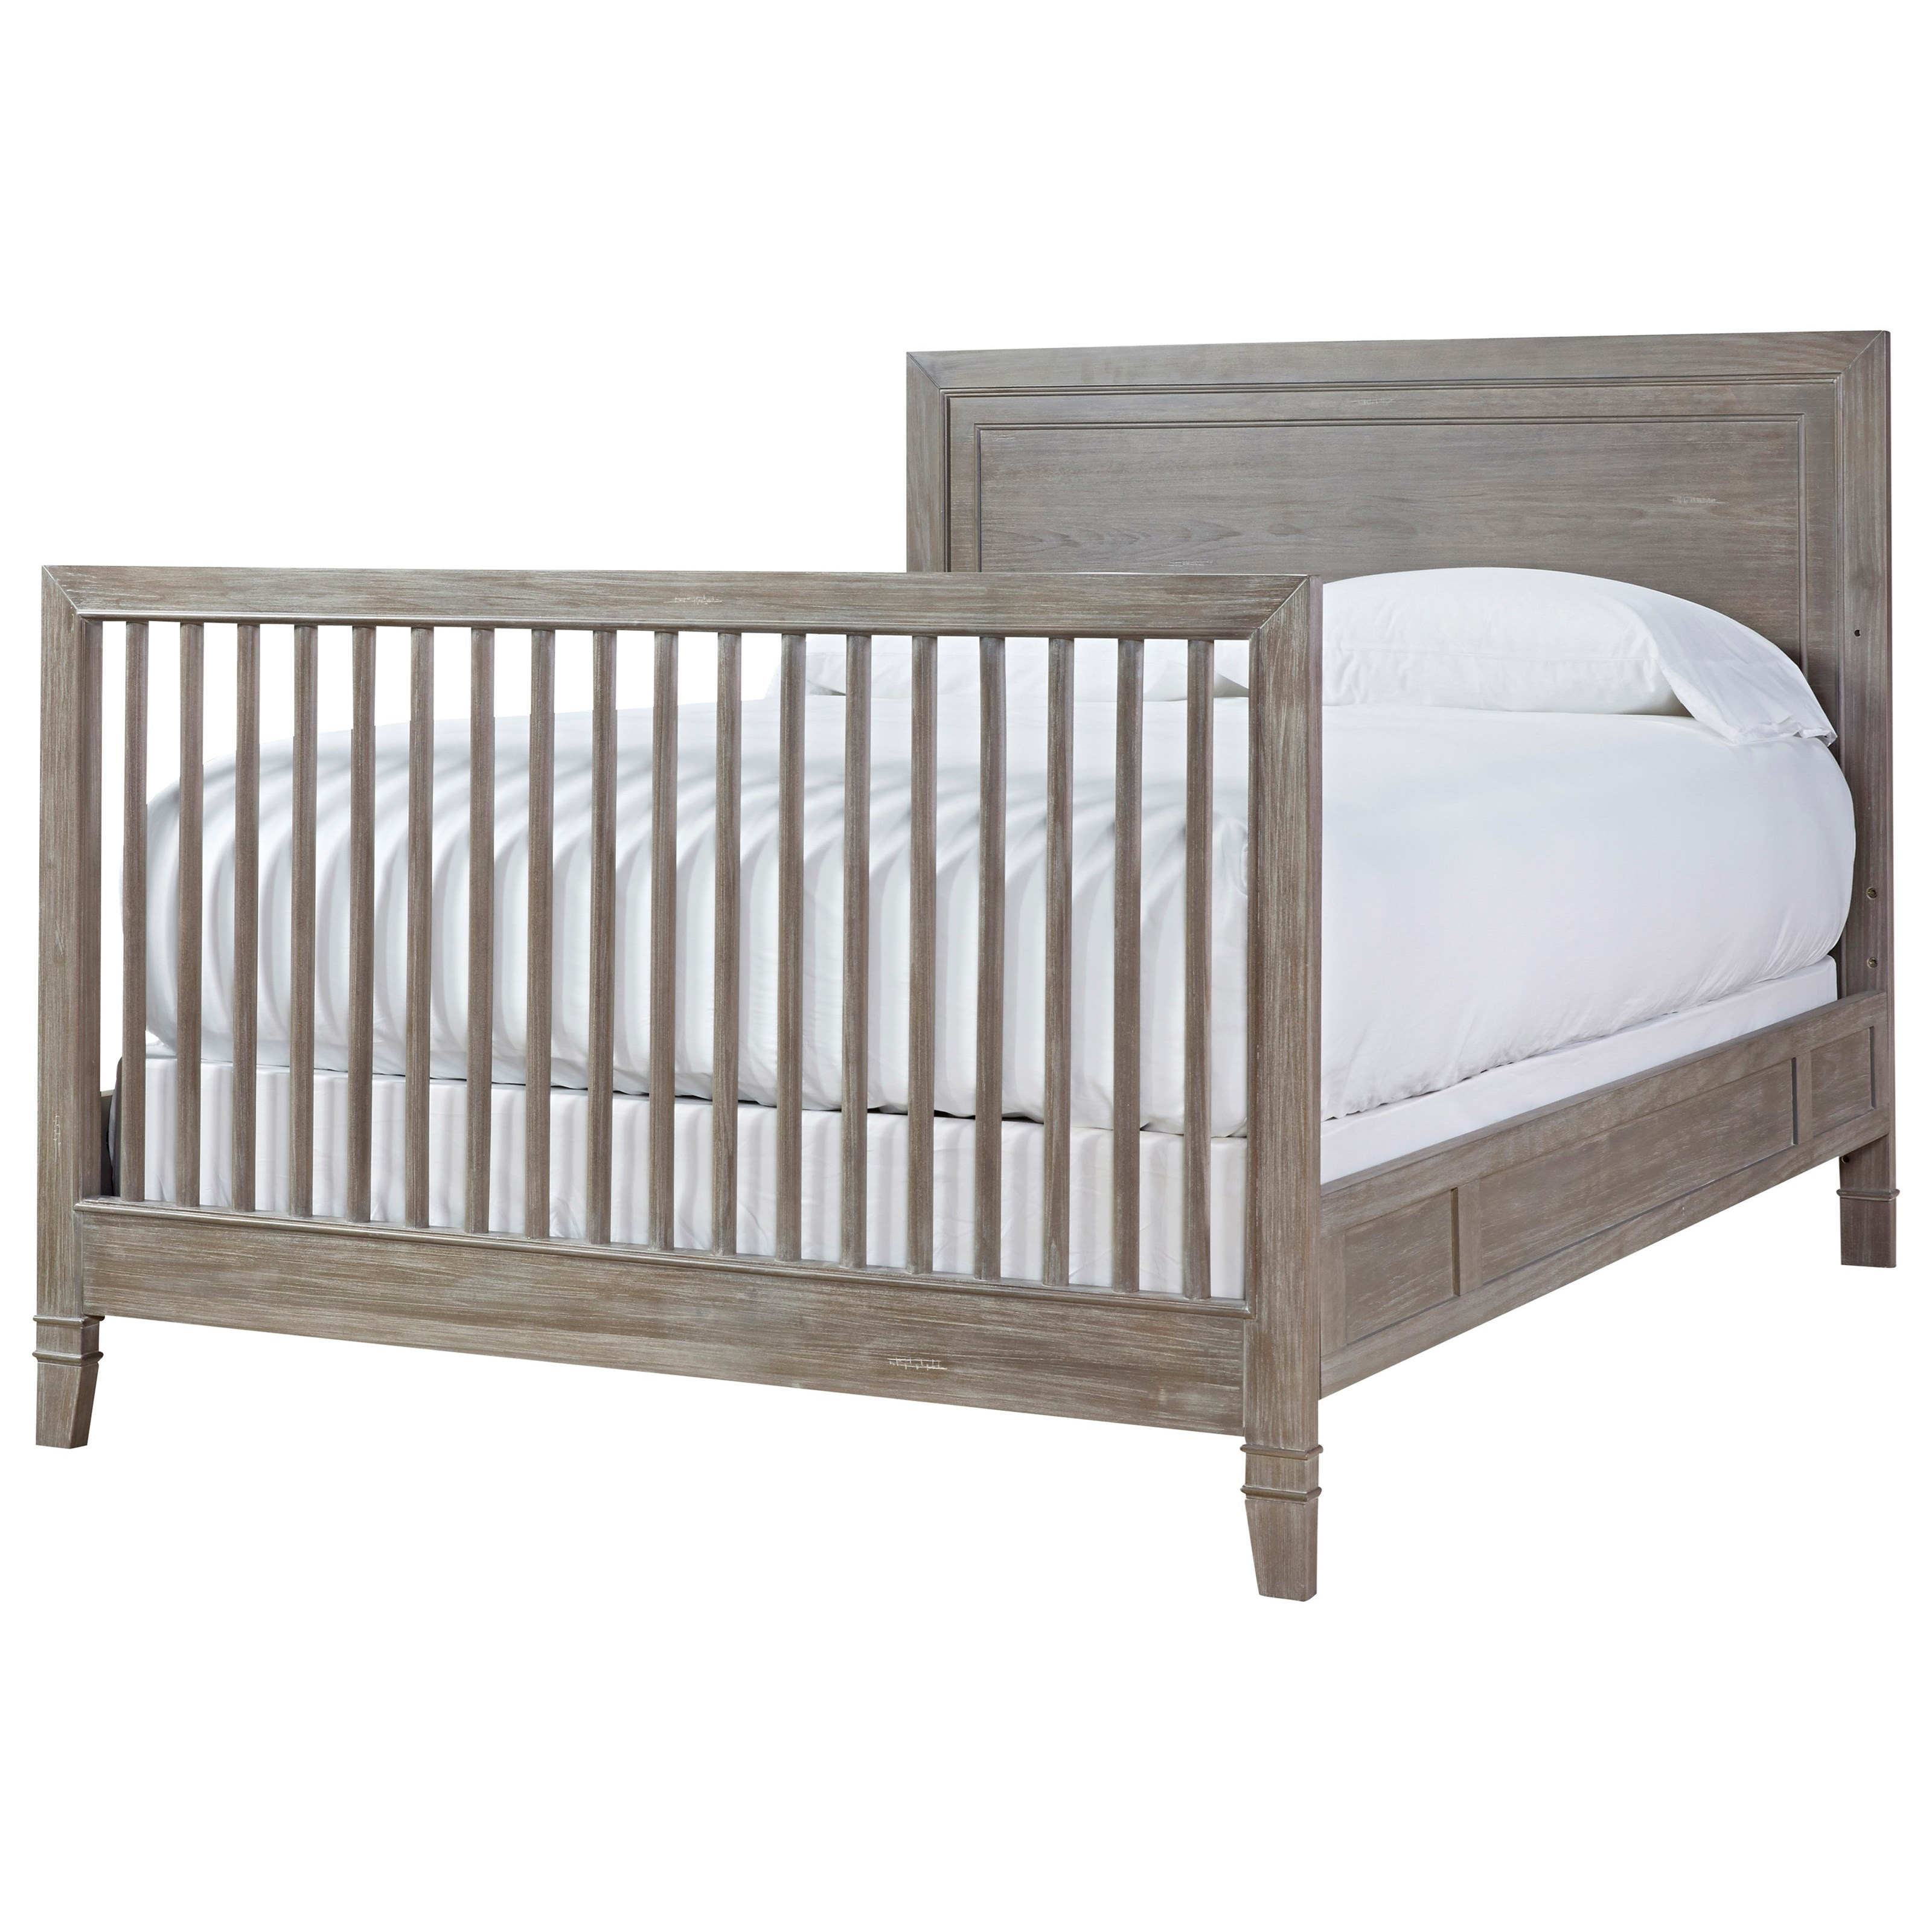 Smartstuff Scrimmage Casual Convertible Crib Toddler Bed